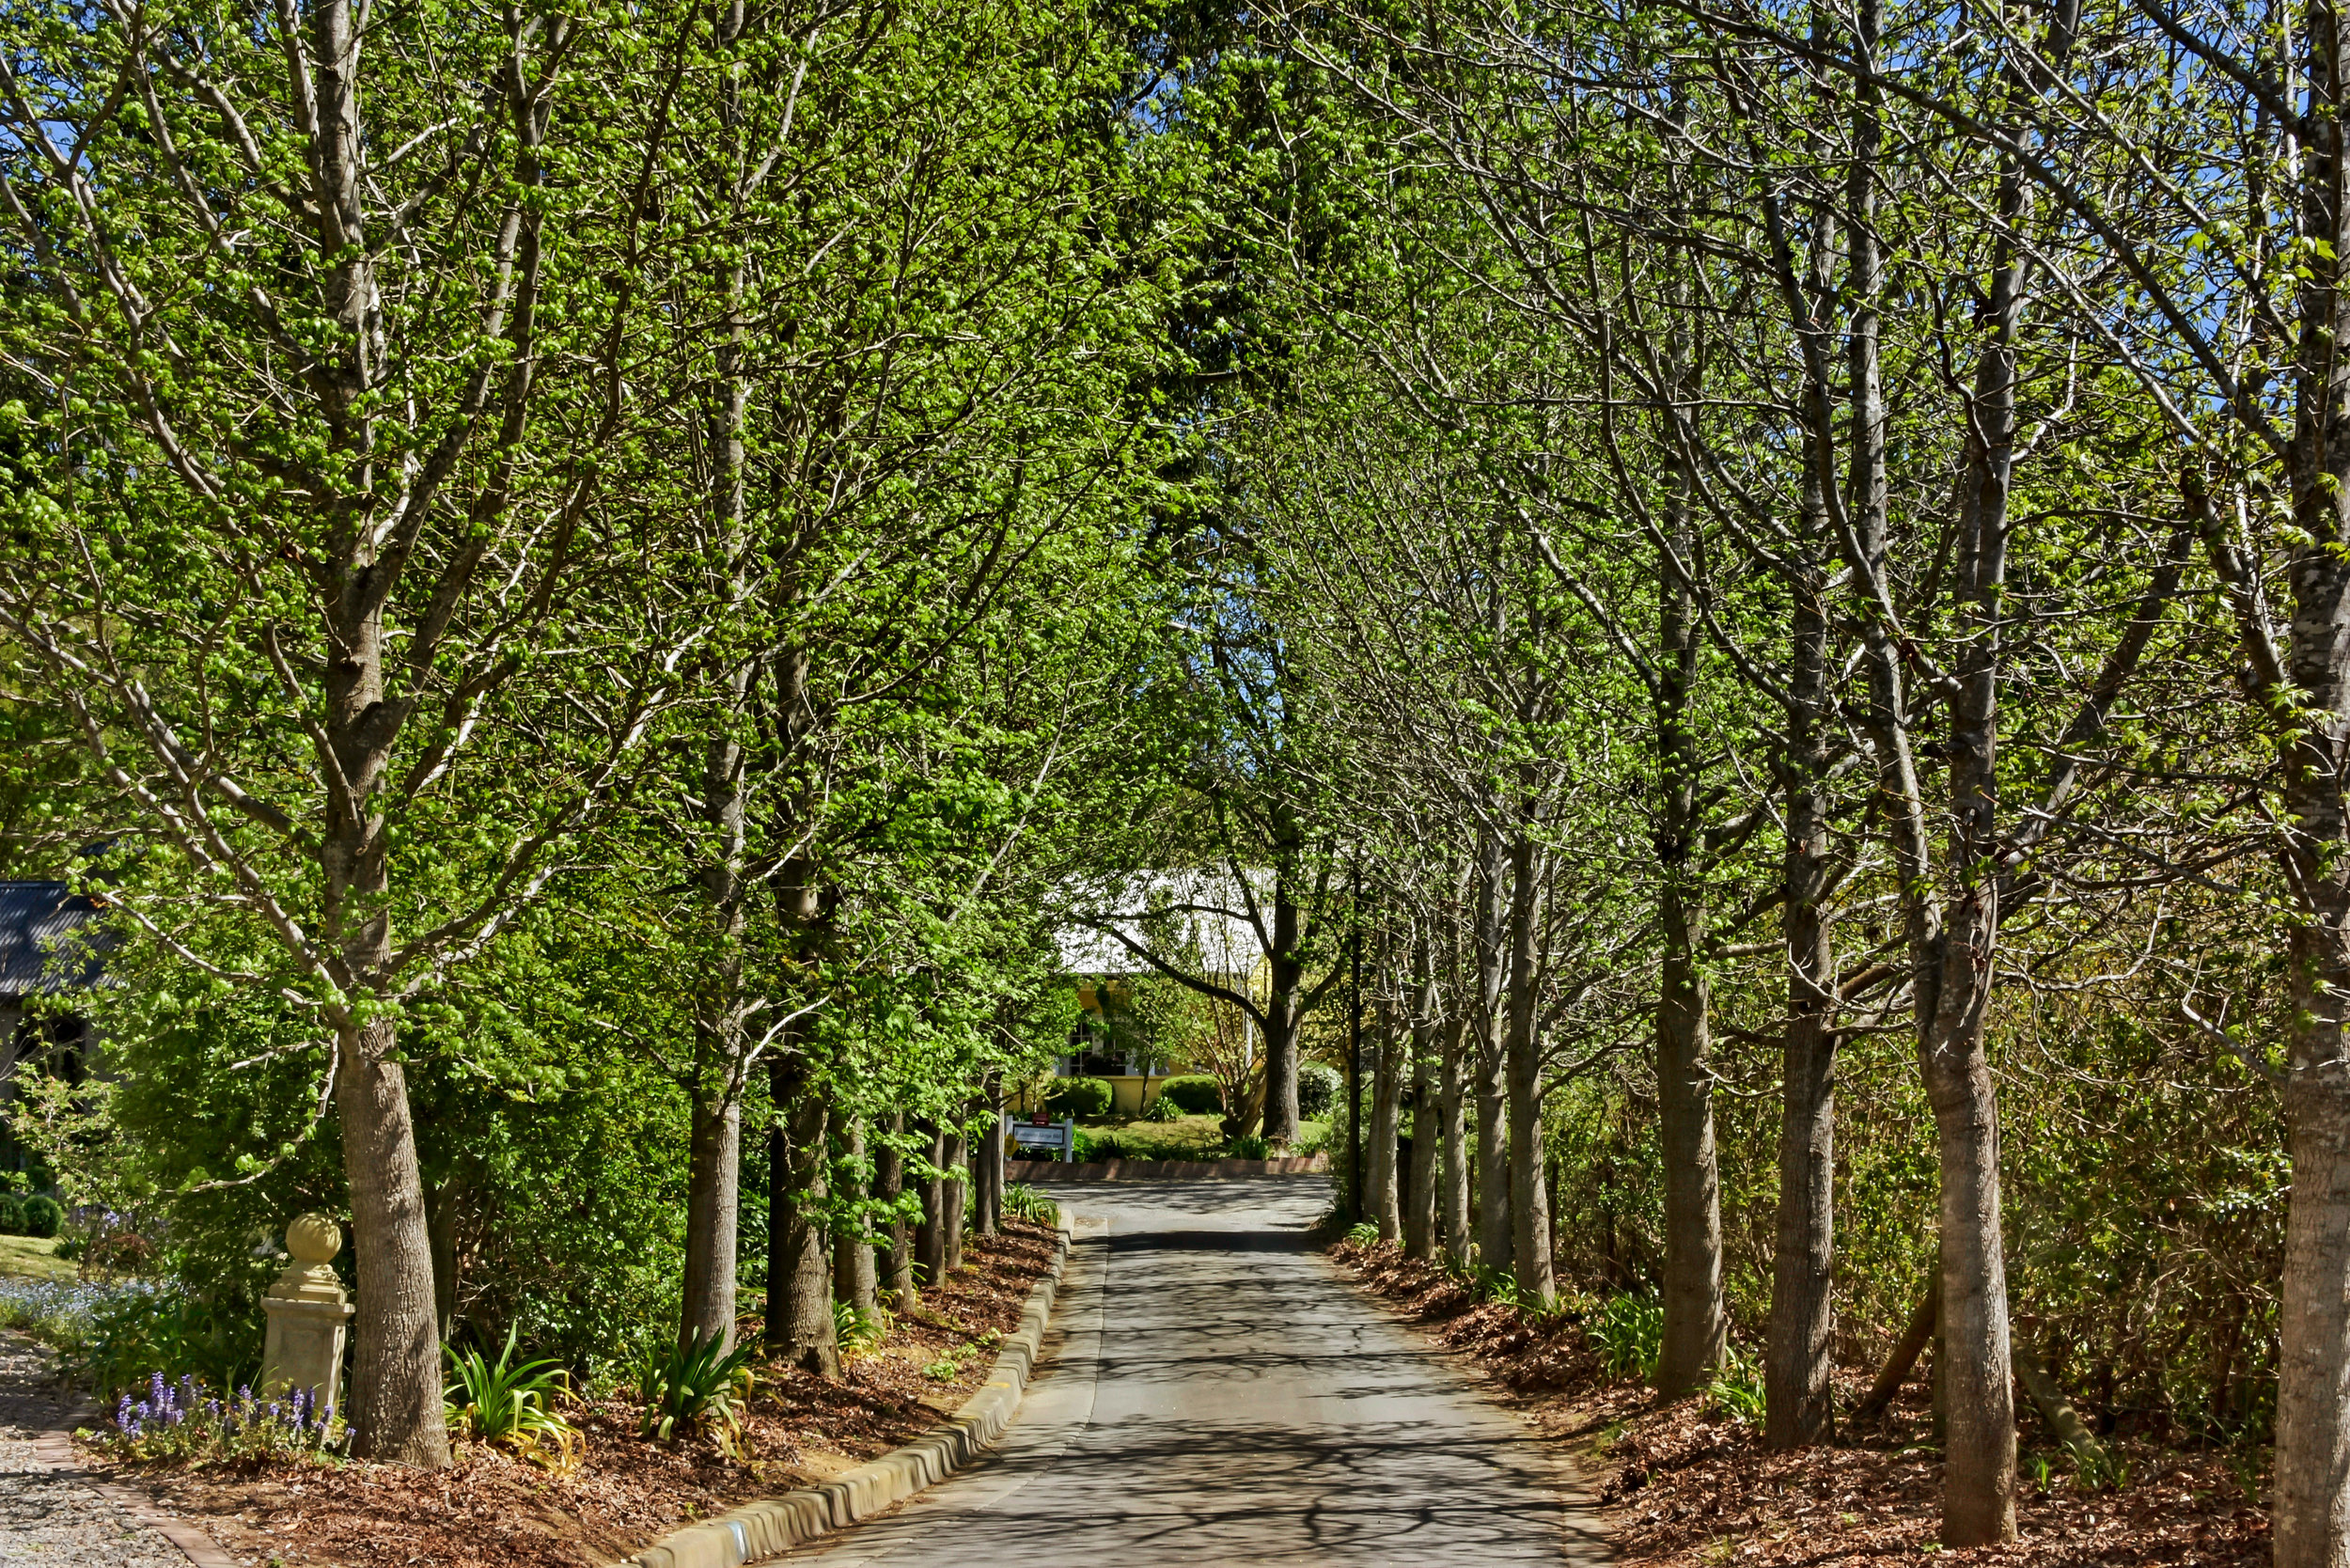 ARRIVE VIA OUR AVENUE OF TREES